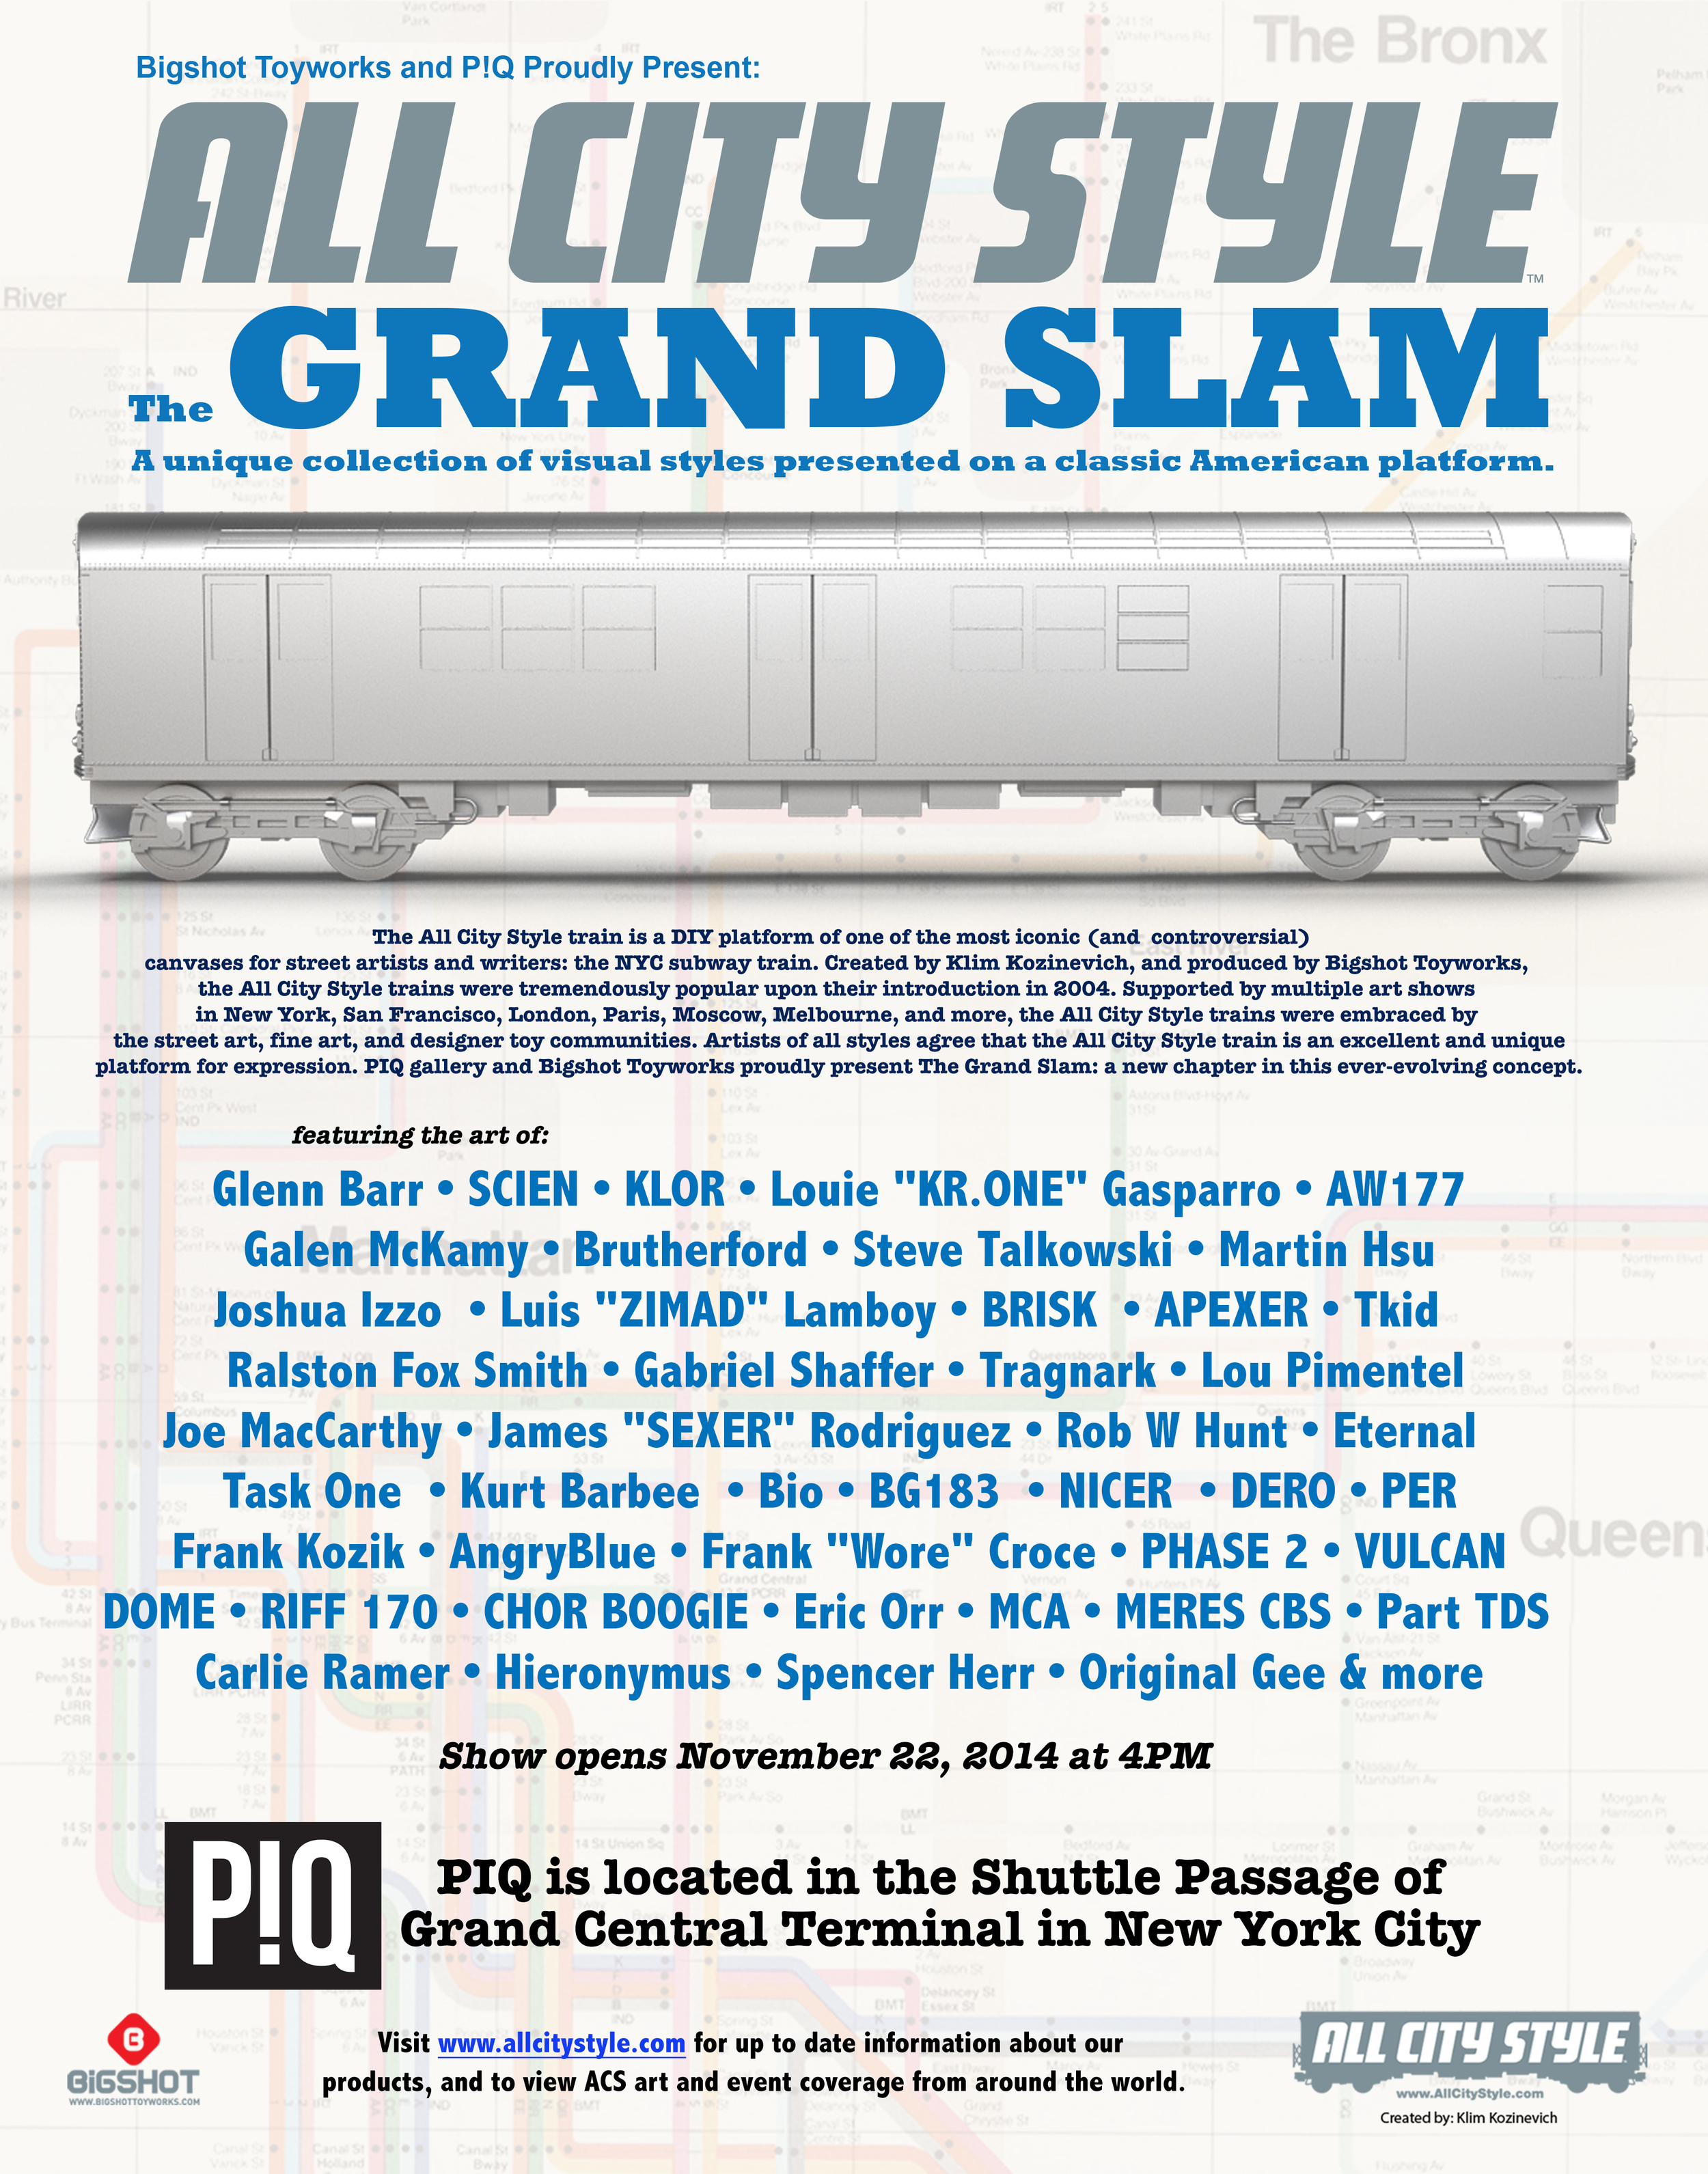 The Grand Slam Flyer v6.jpg